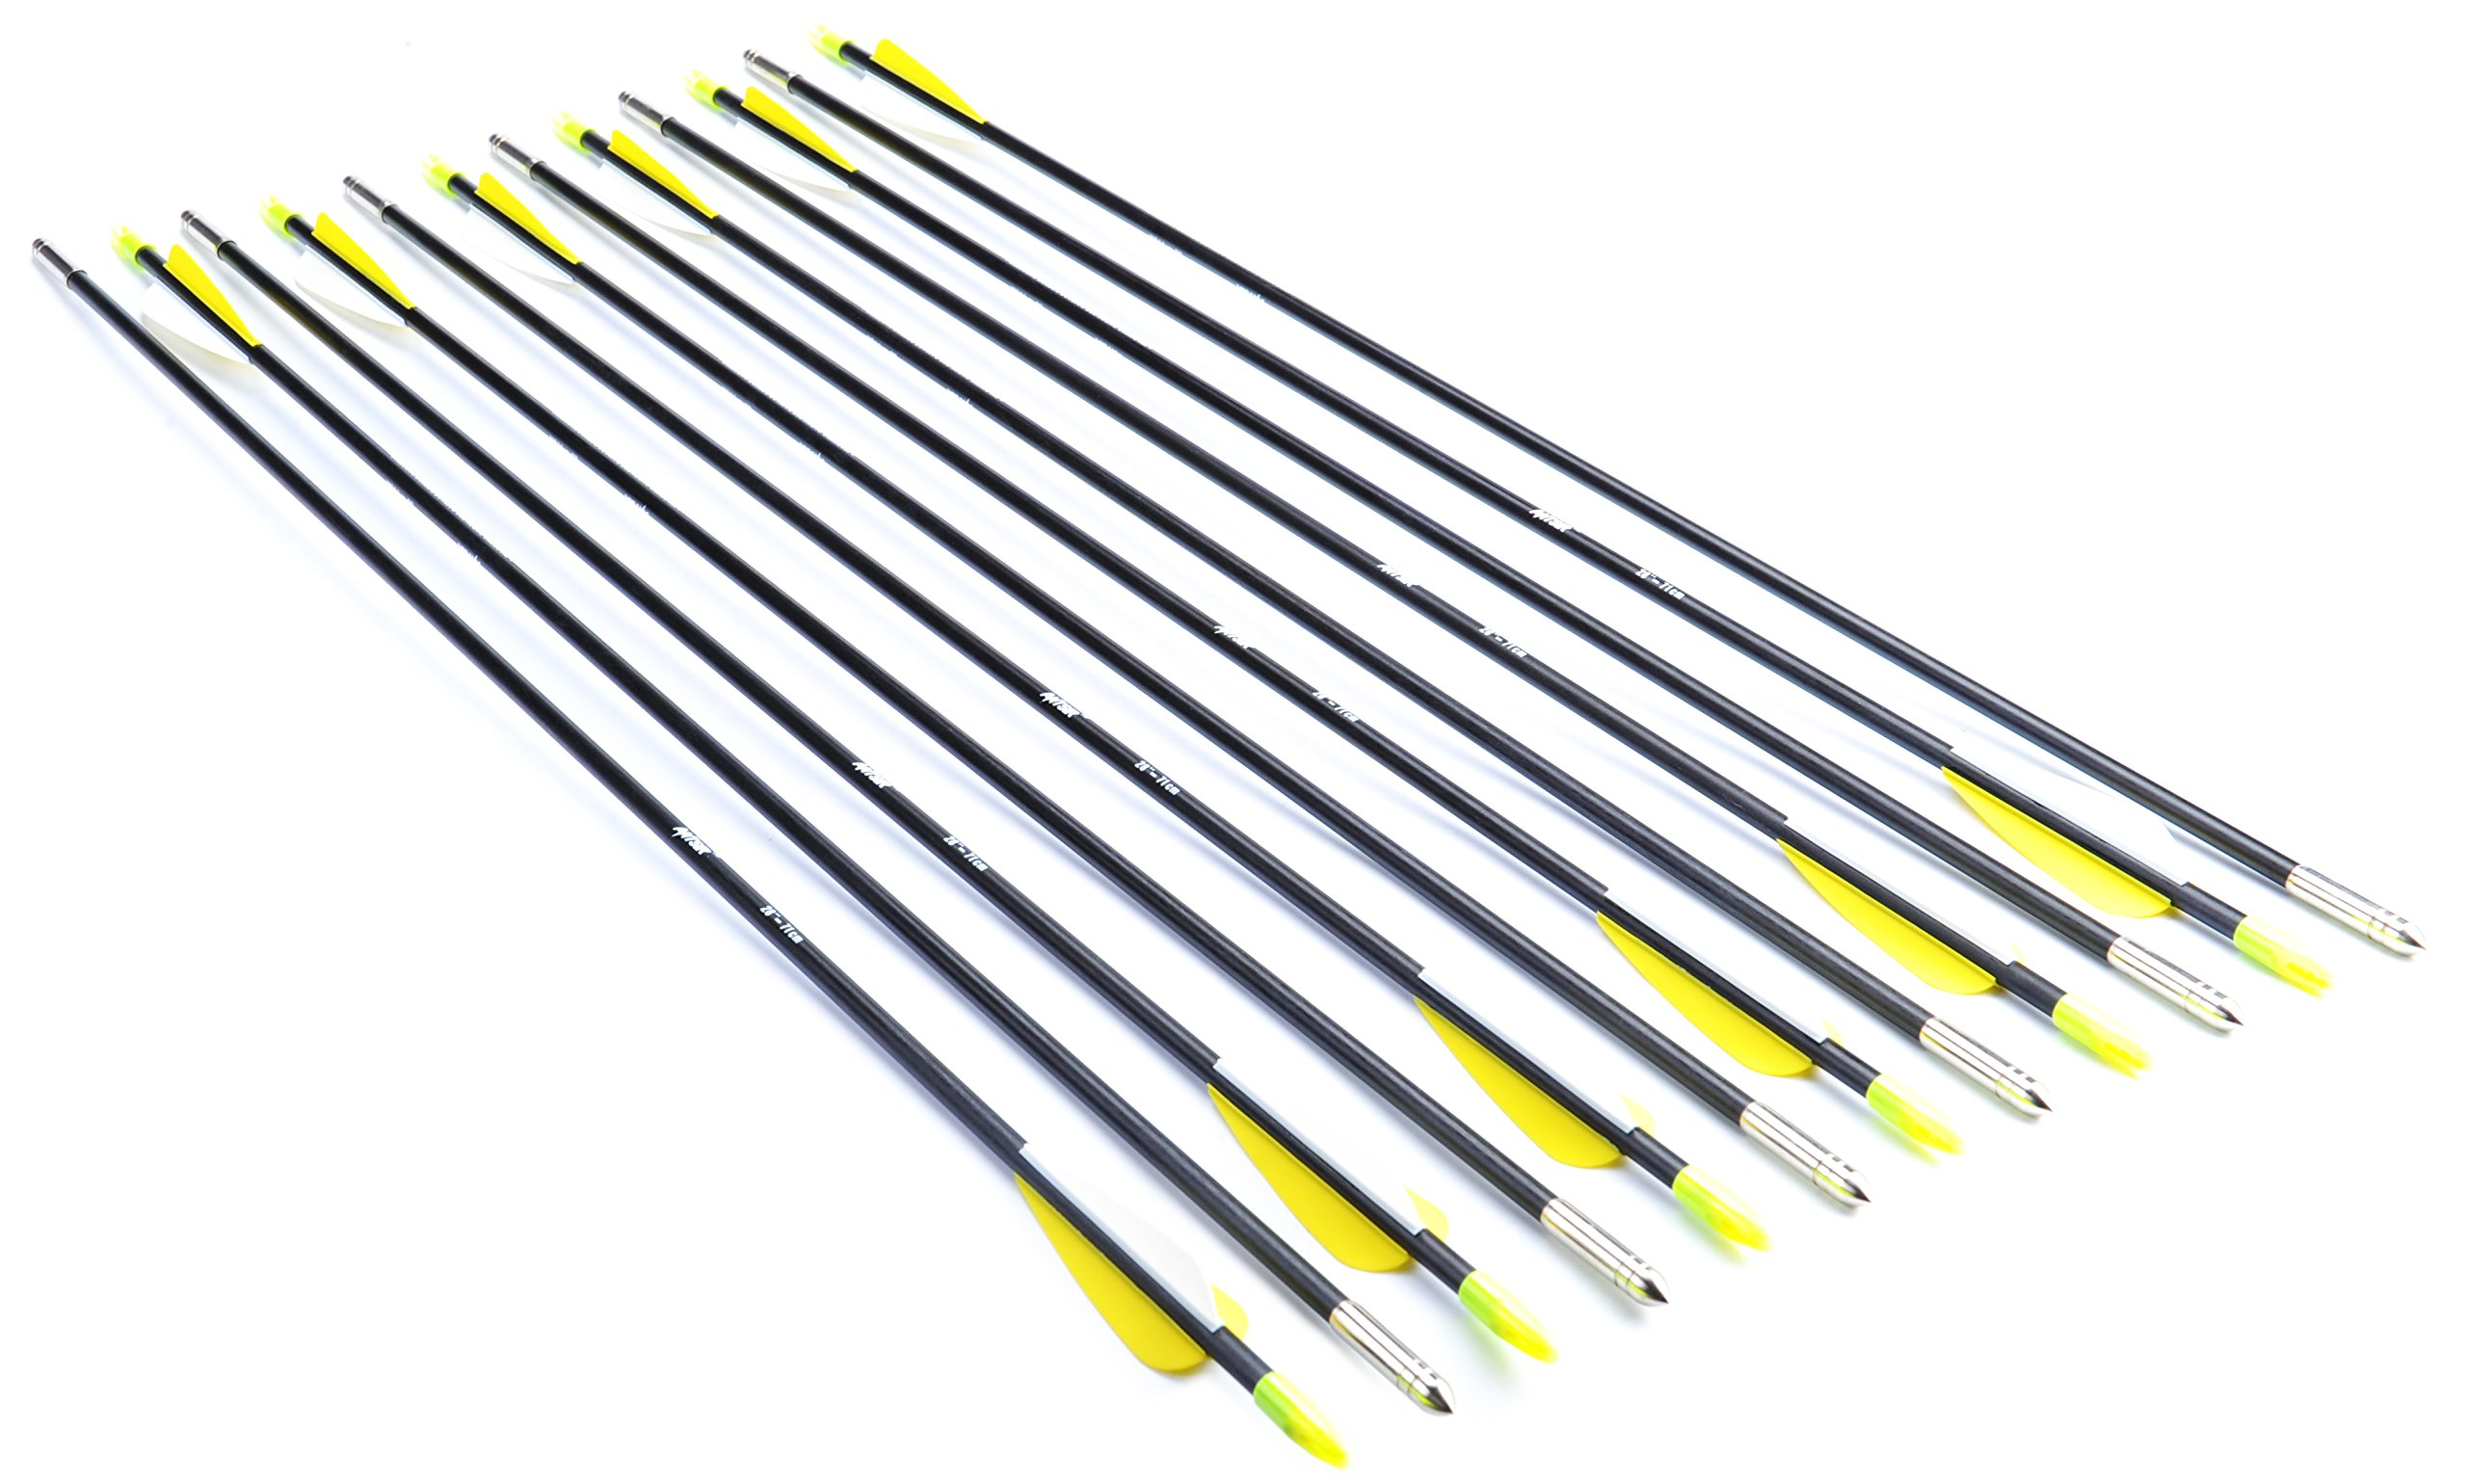 ANTSIR 28-Inch Fiberglass Archery Target Arrows,Practice Arrows for Children,Woman or Beginner,with Adjustable Nocks for Traditional & Recuve Bow(Pack of 12)